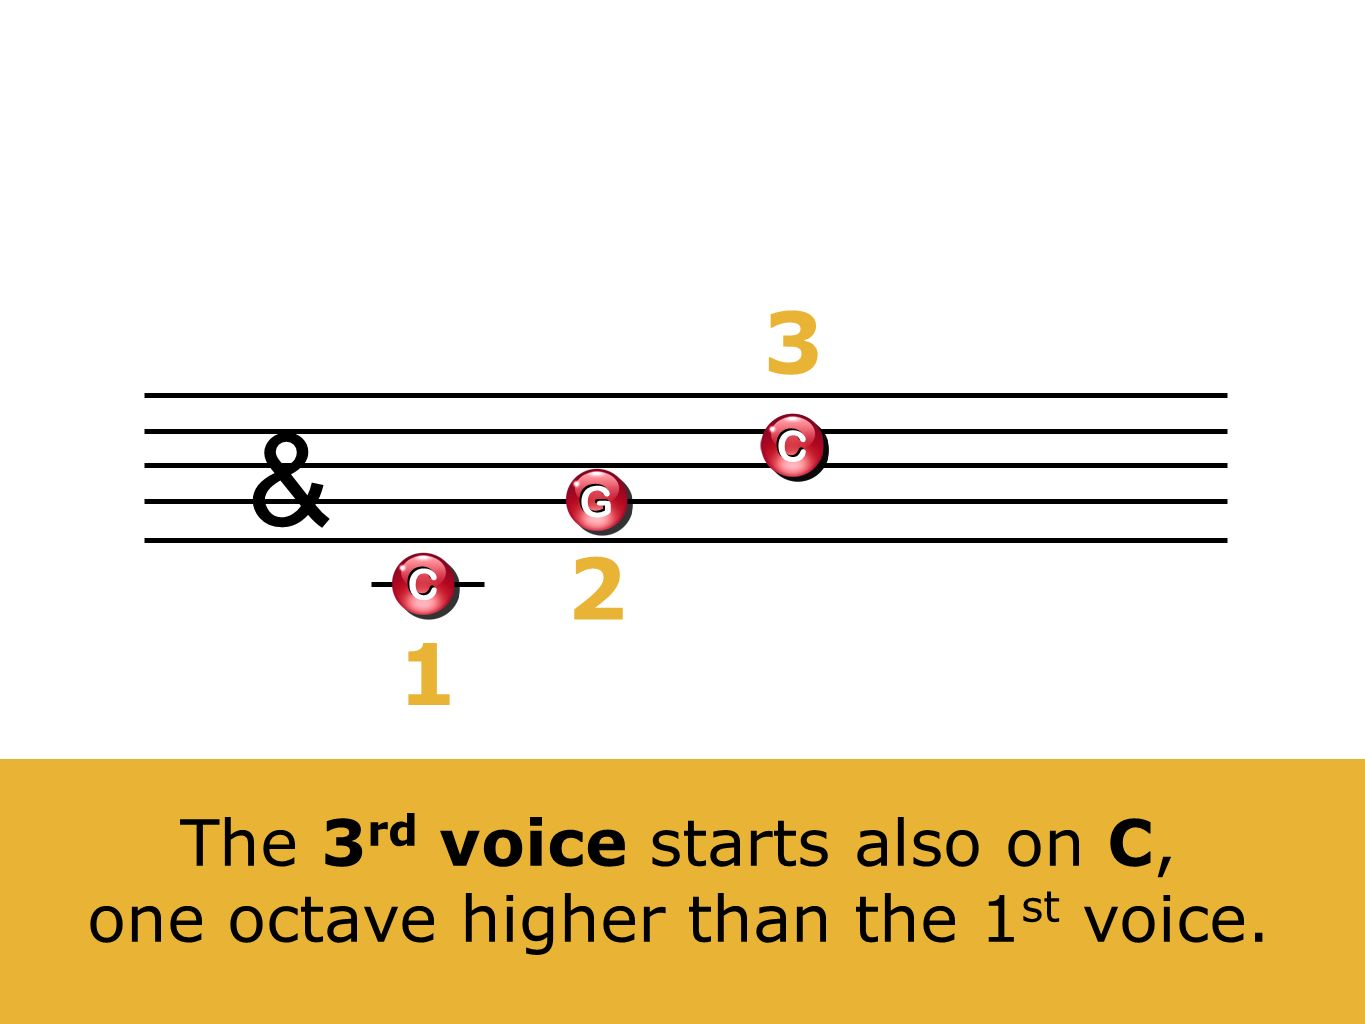 & 1 C C C C C C The 3 rd voice starts also on C, one octave higher than the 1 st voice. 2 G G 3